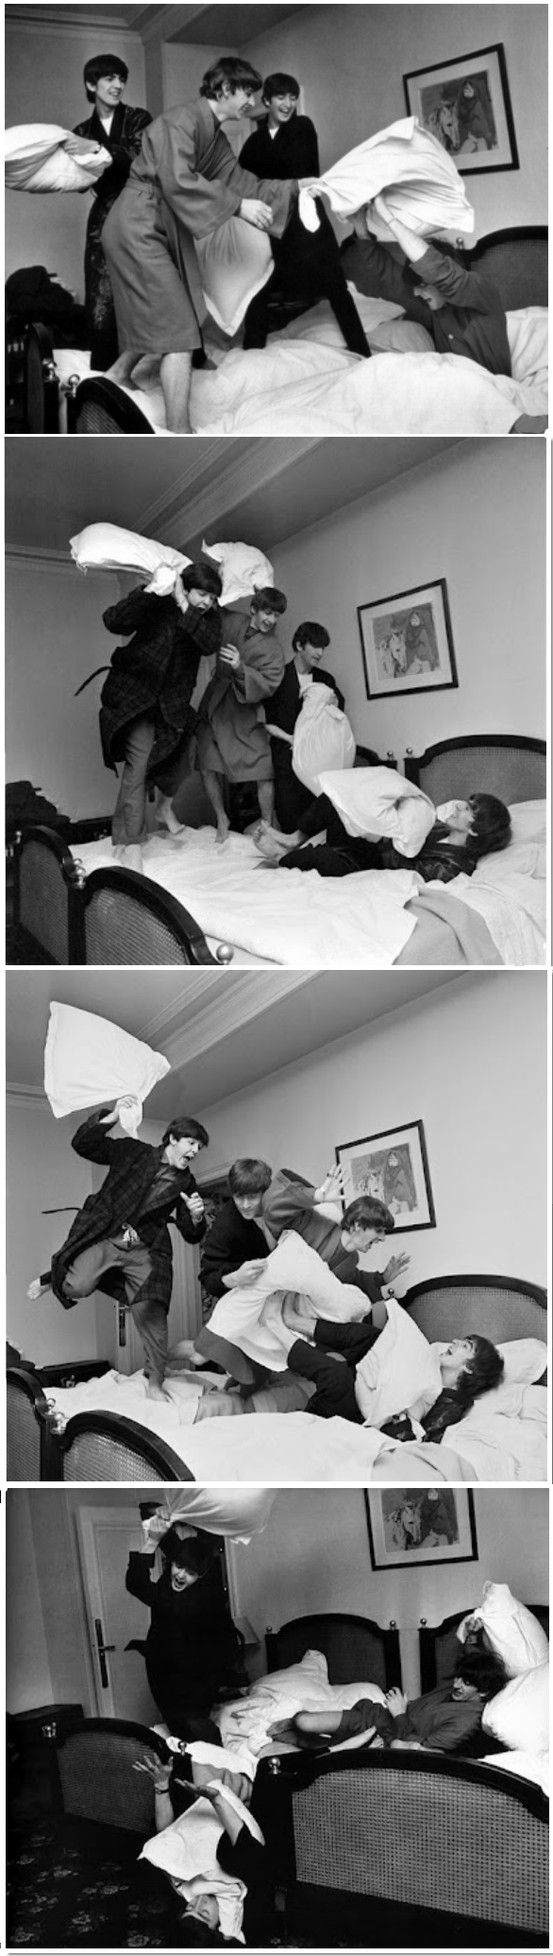 The Beatles...this is from the first movie   *A Hard Days Night**... and all the teen mags too..